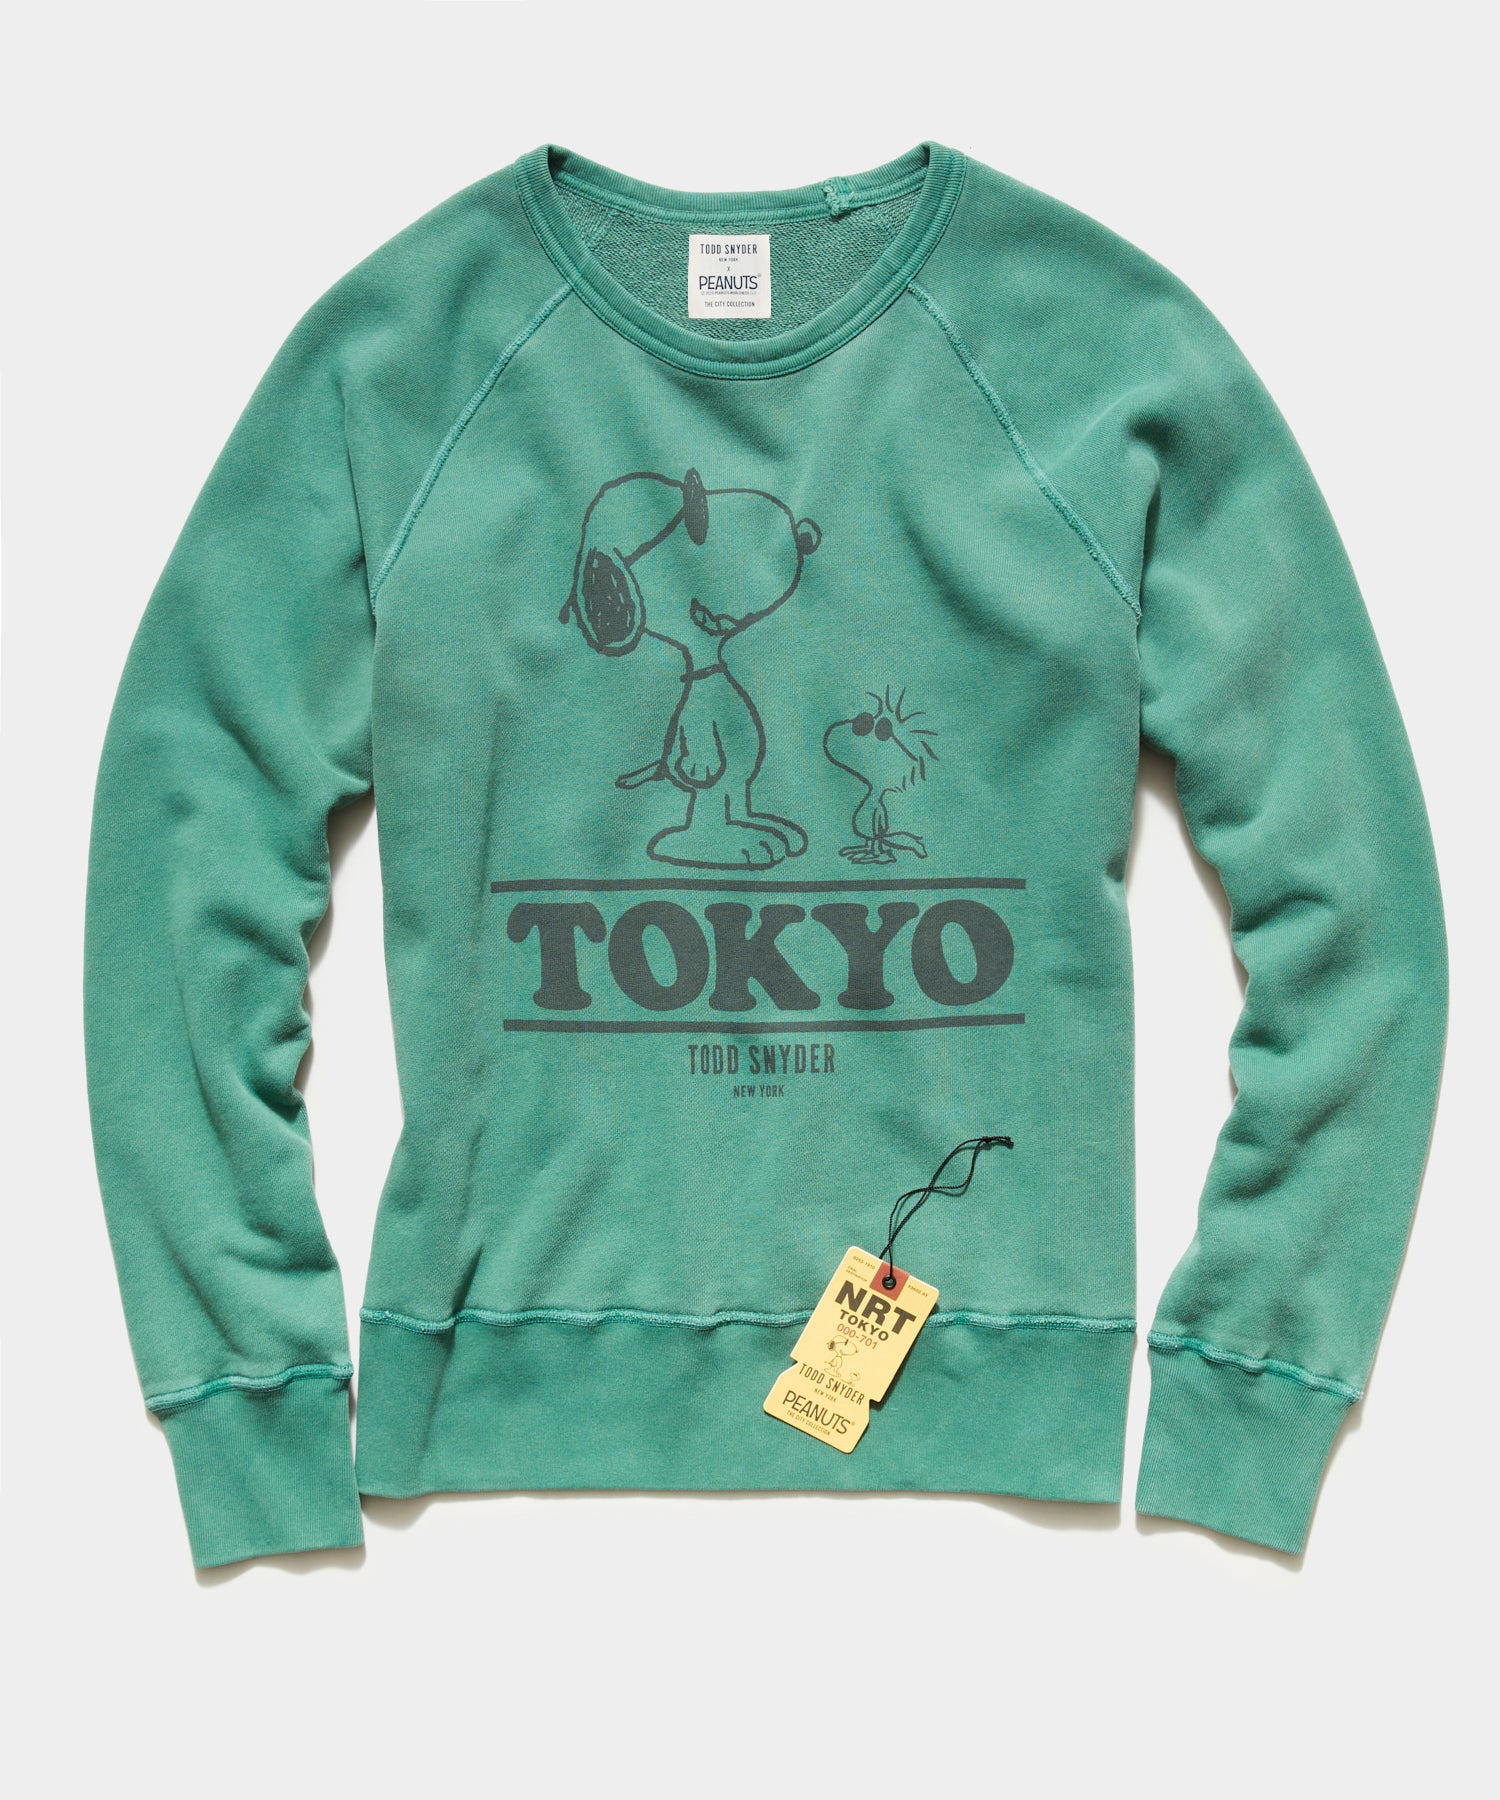 Peanuts City Collection Tokyo Crewneck Sweatshirt in Green